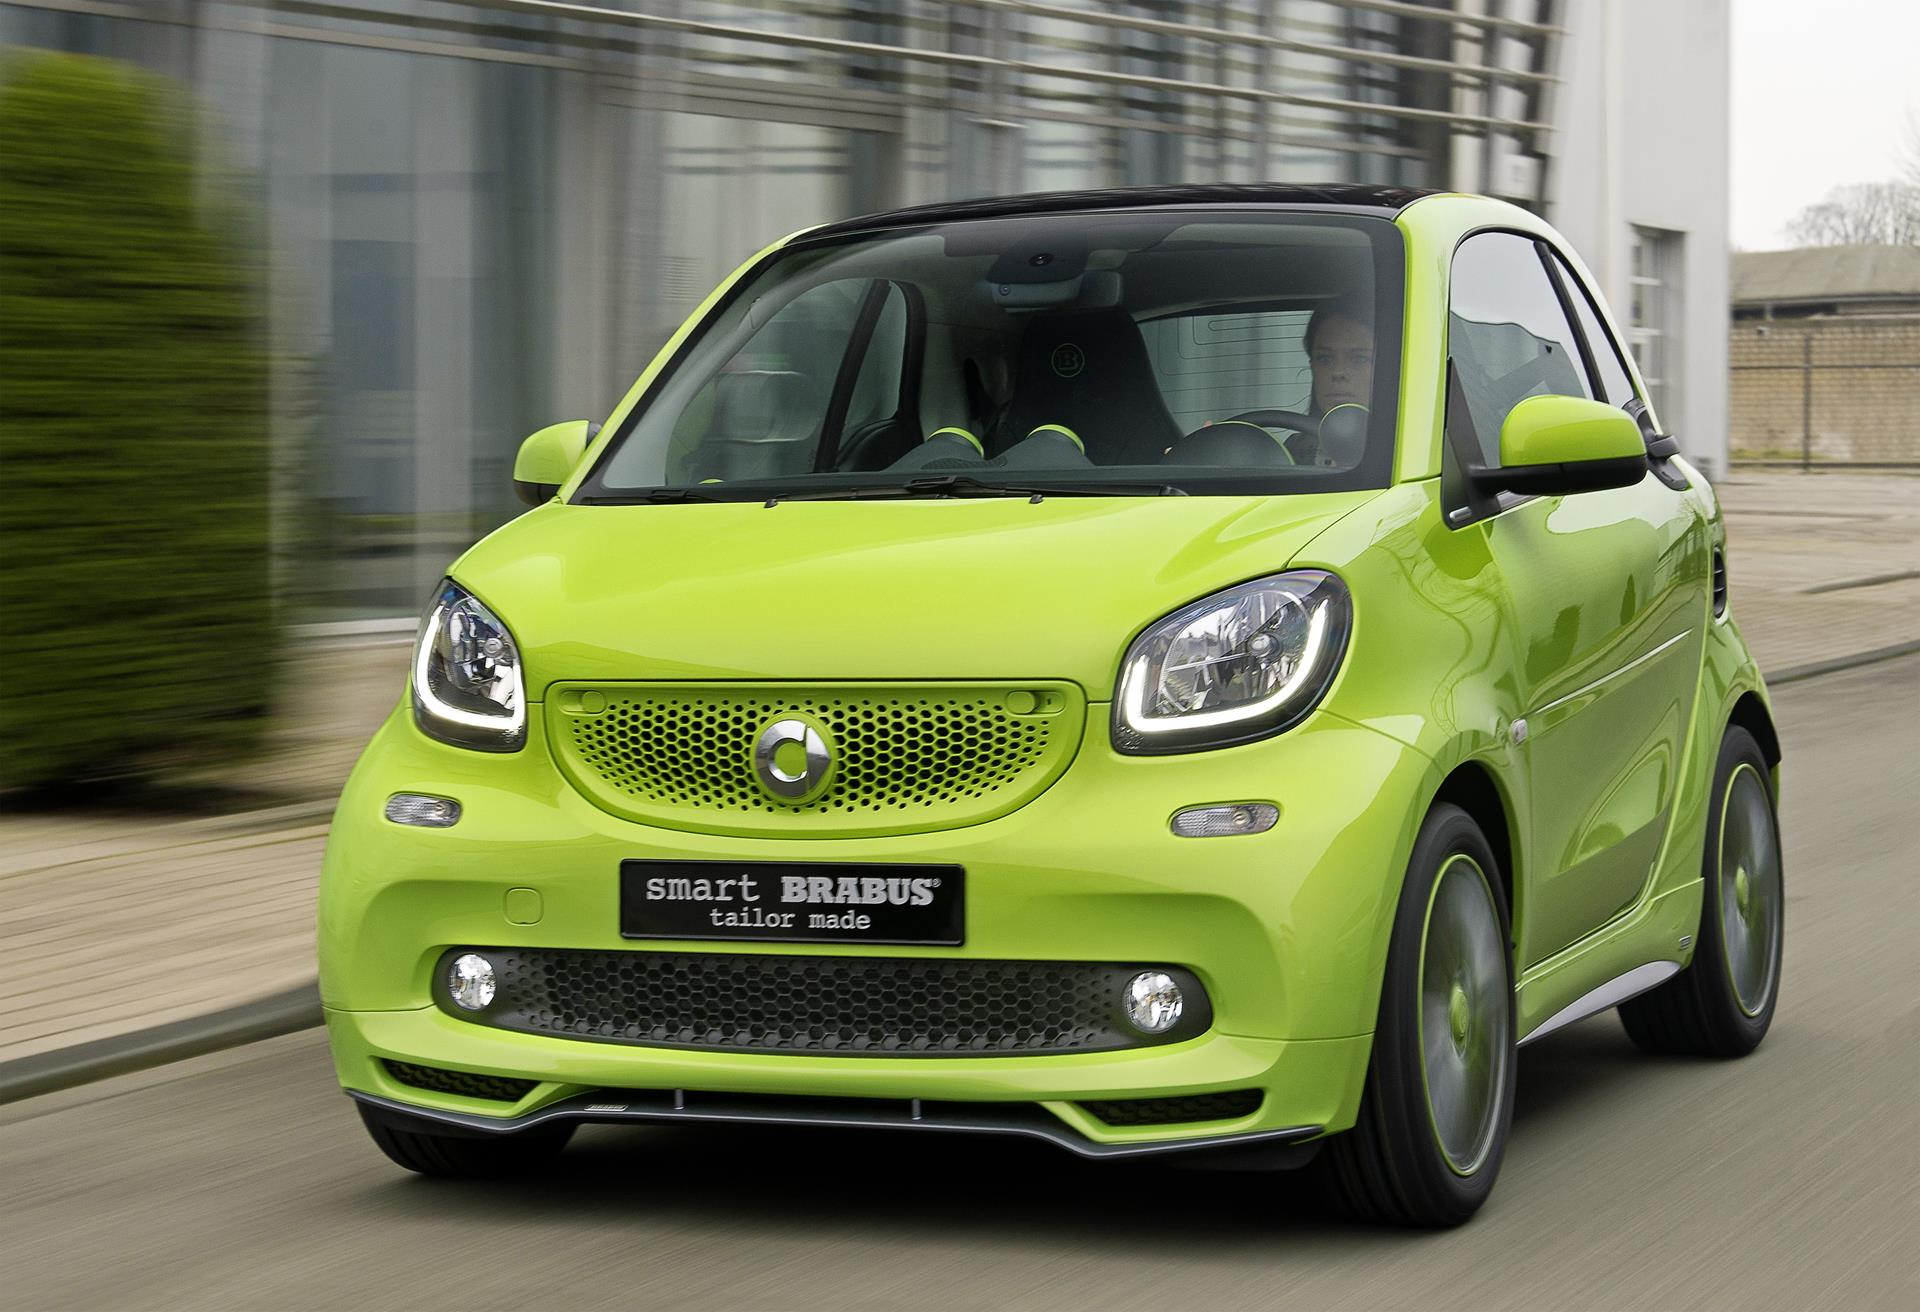 Smart Lunghezza Dimension Smart Fortwo The Vector Drawing Smart Fortwo